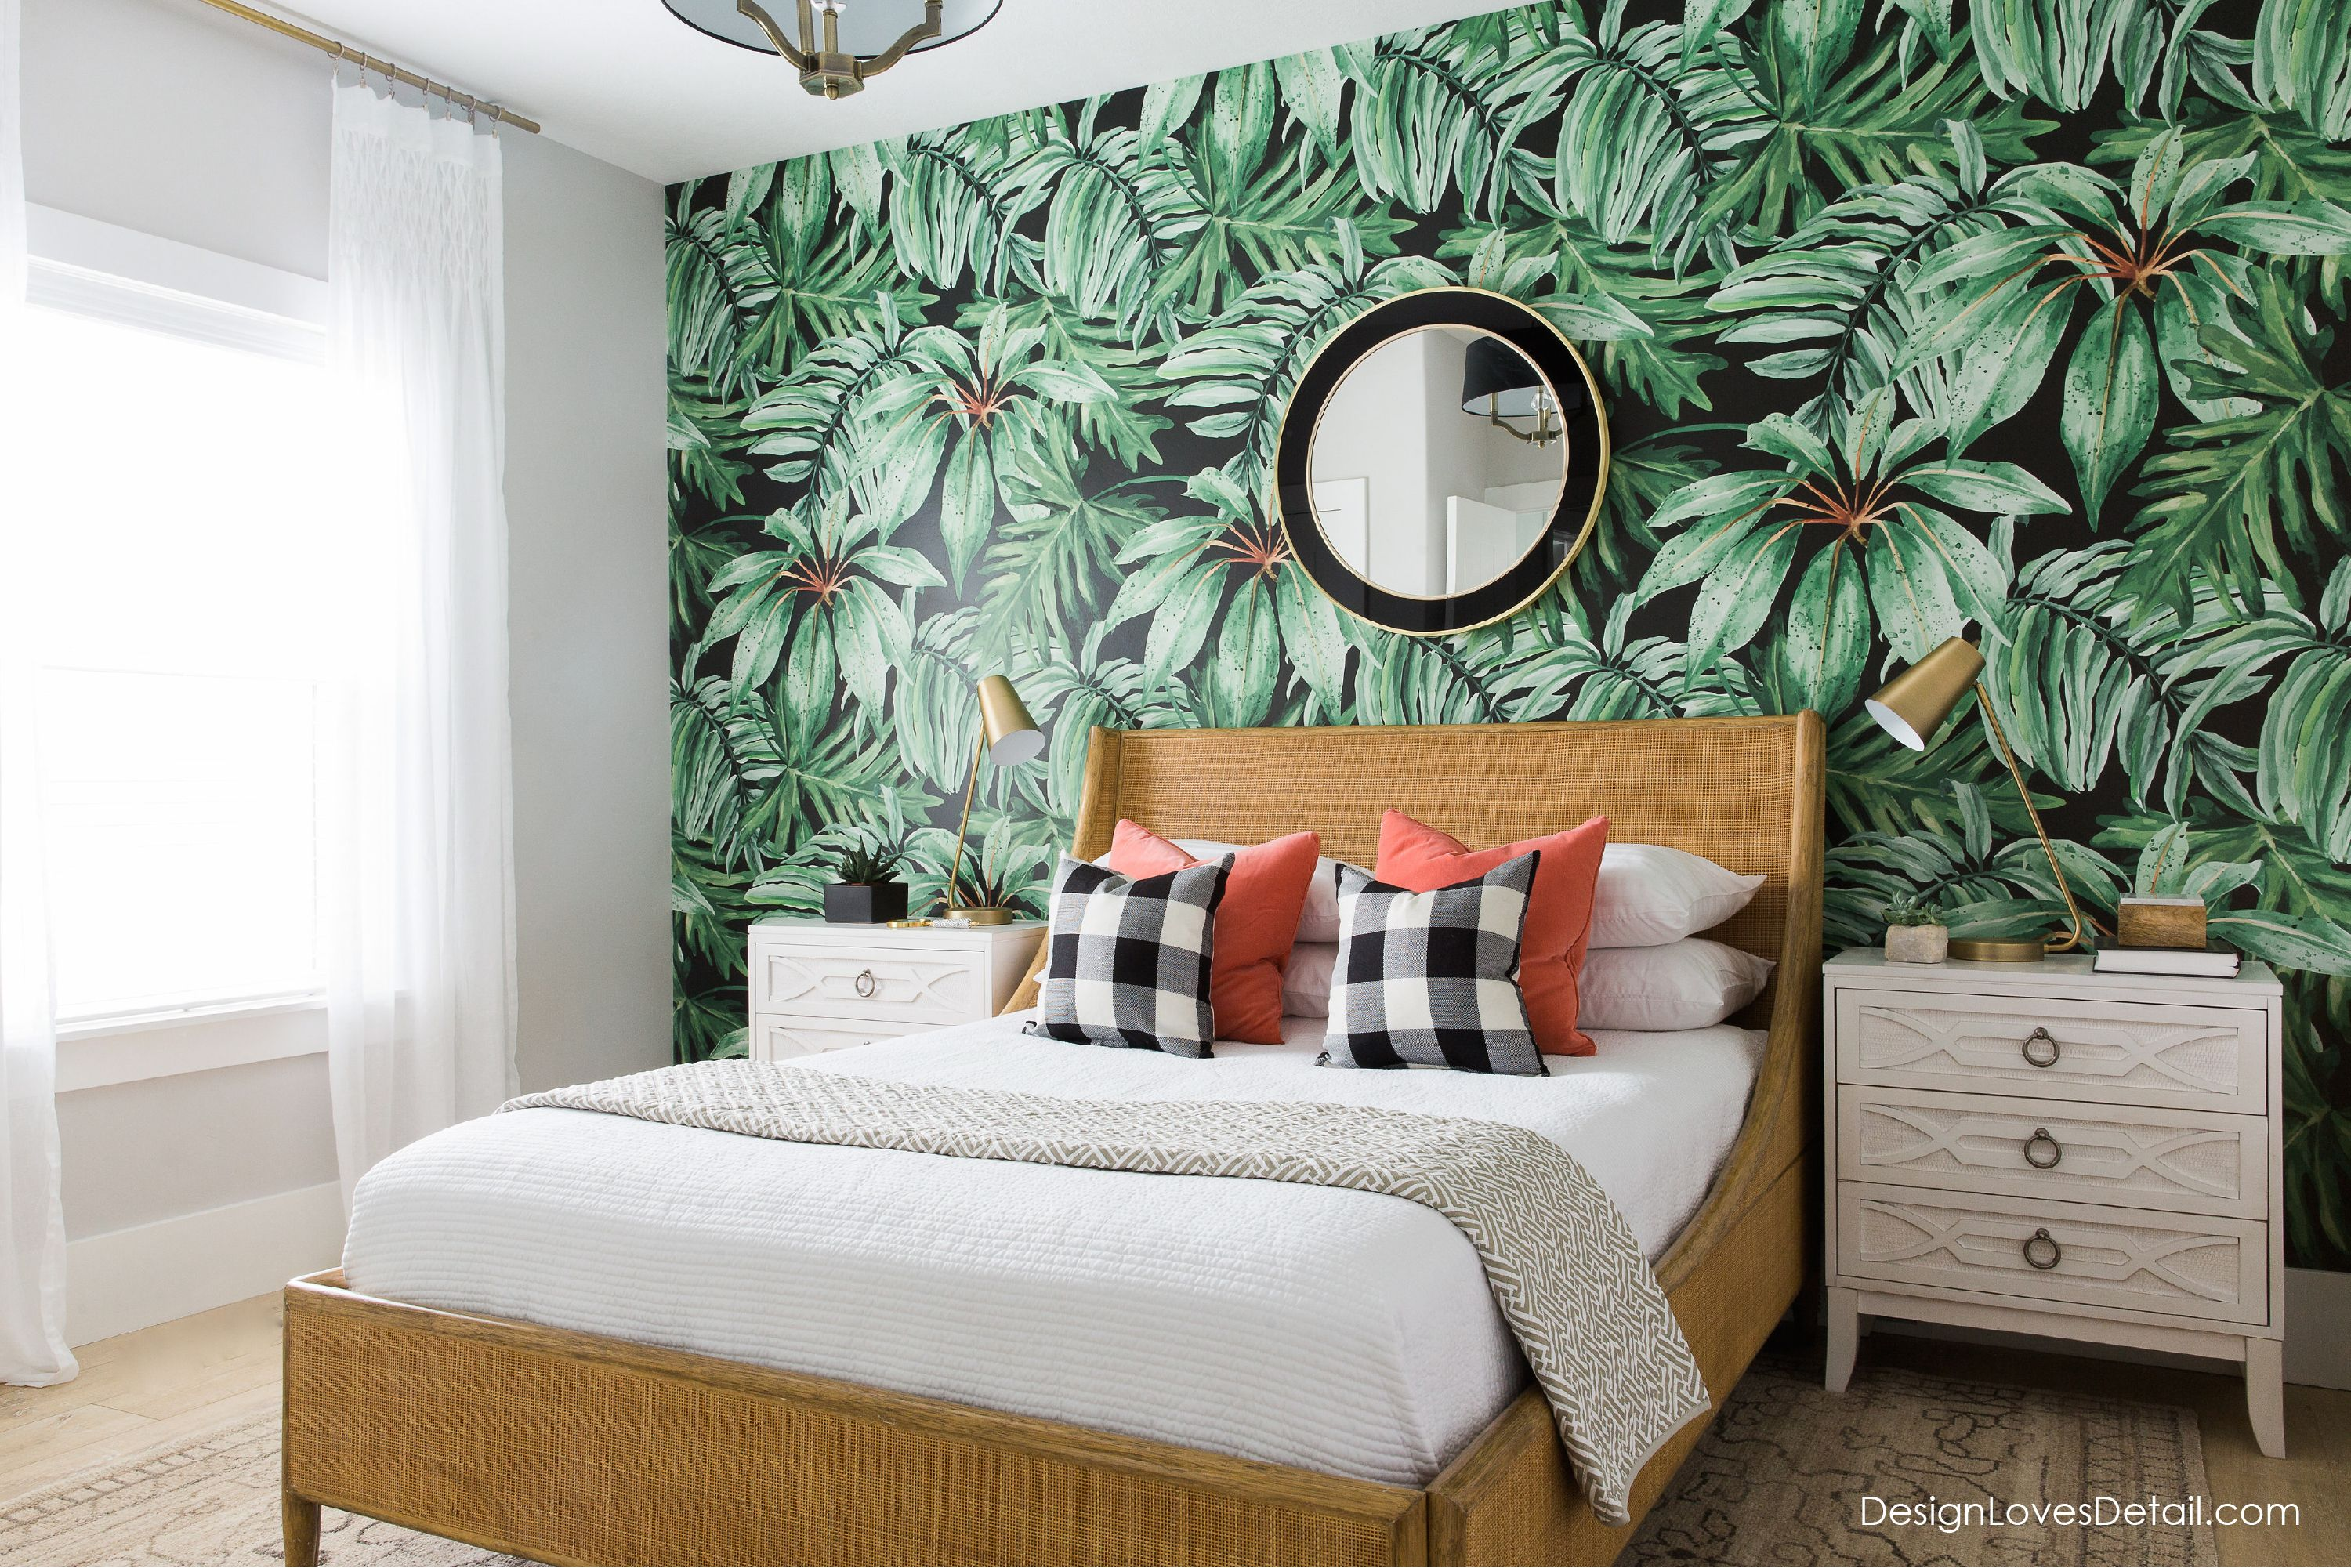 this guest bedroom designed by mollie openshaw has a tropical print wallpaper creating an eye catching accent wall for this fun space - Tropical Bedroom Decoration